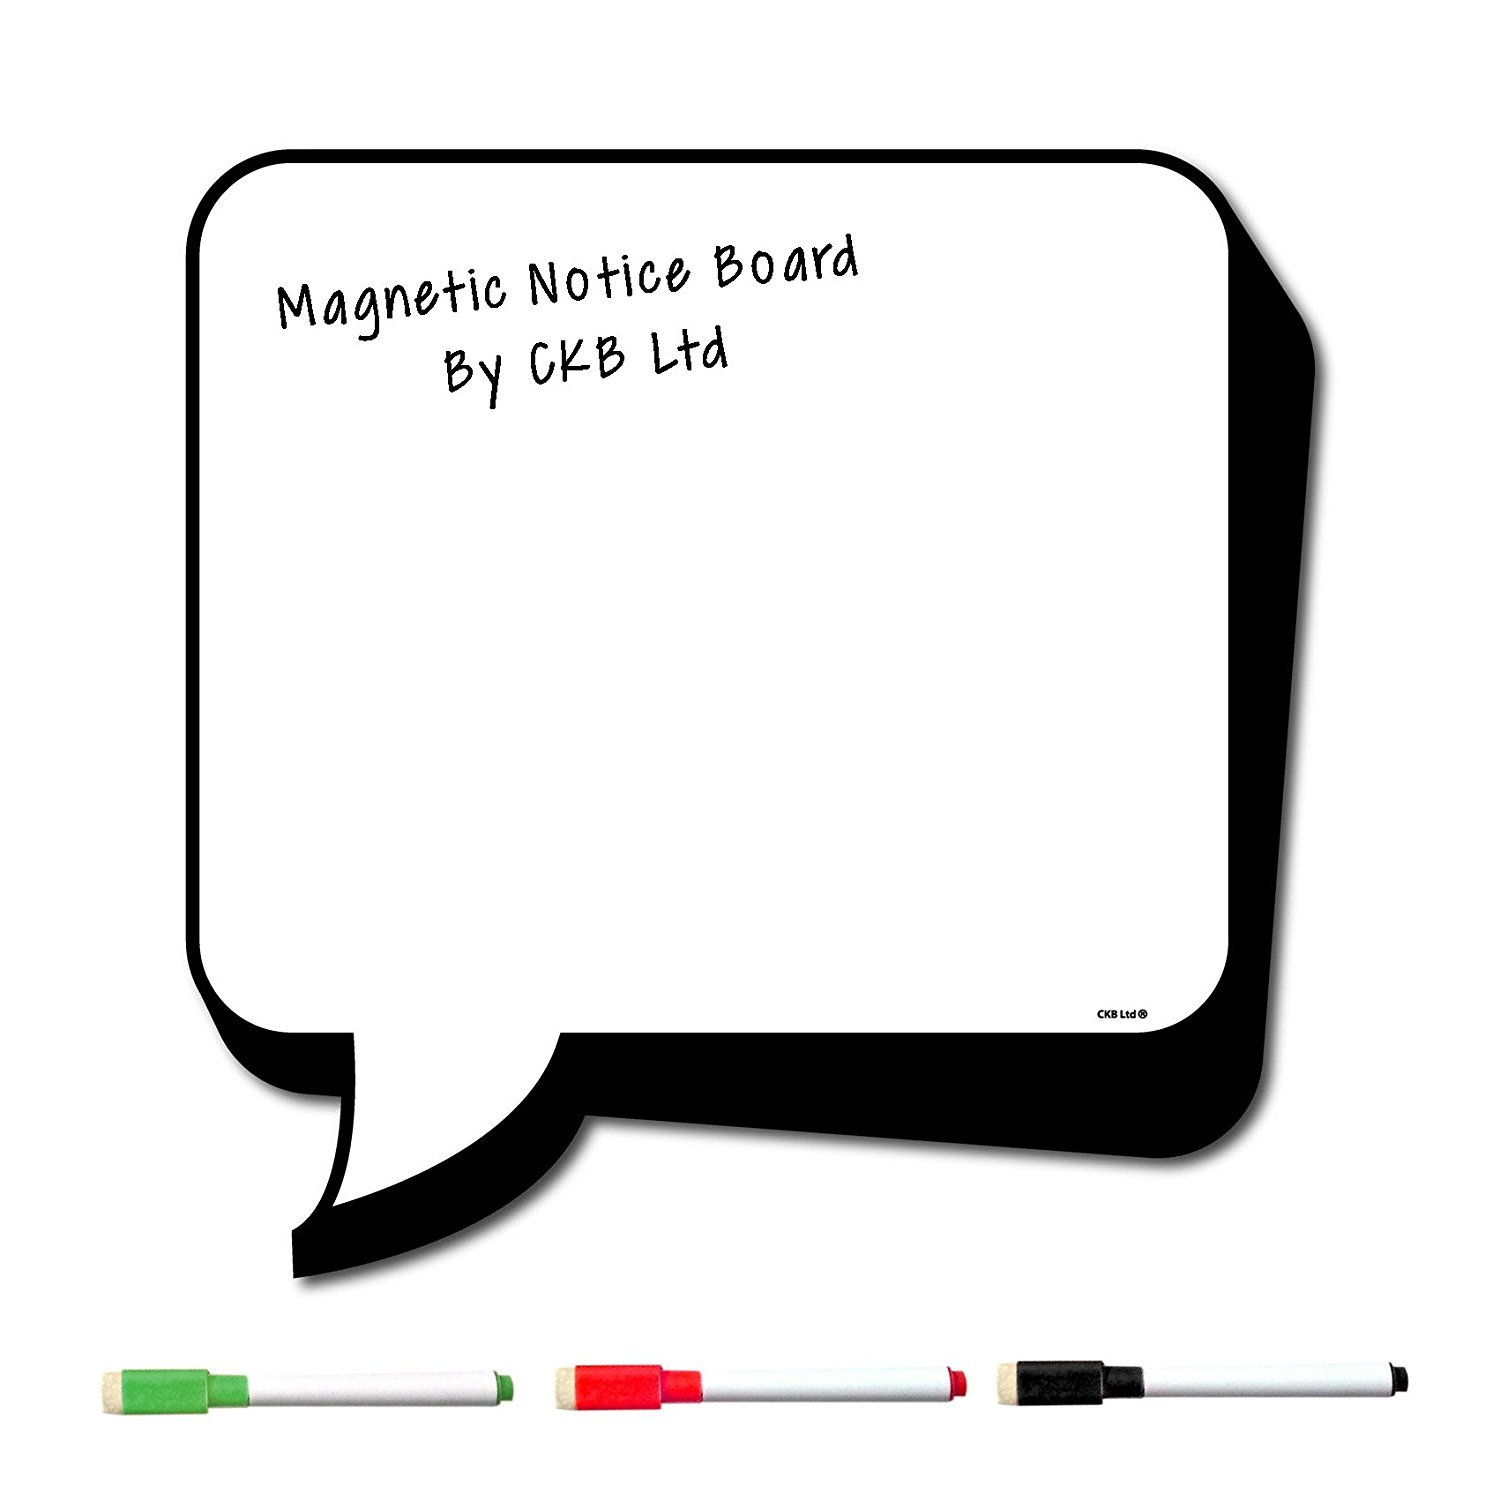 CKB Ltd CARTOON SPEECH BUBBLE Refrigerator Reminder Board Magnetic With Marker White & Pen - Drywipe Magnet Whiteboard Kitchen Memo Notice Large Daily Planner BLANK Dry Wipe Signage Sheet